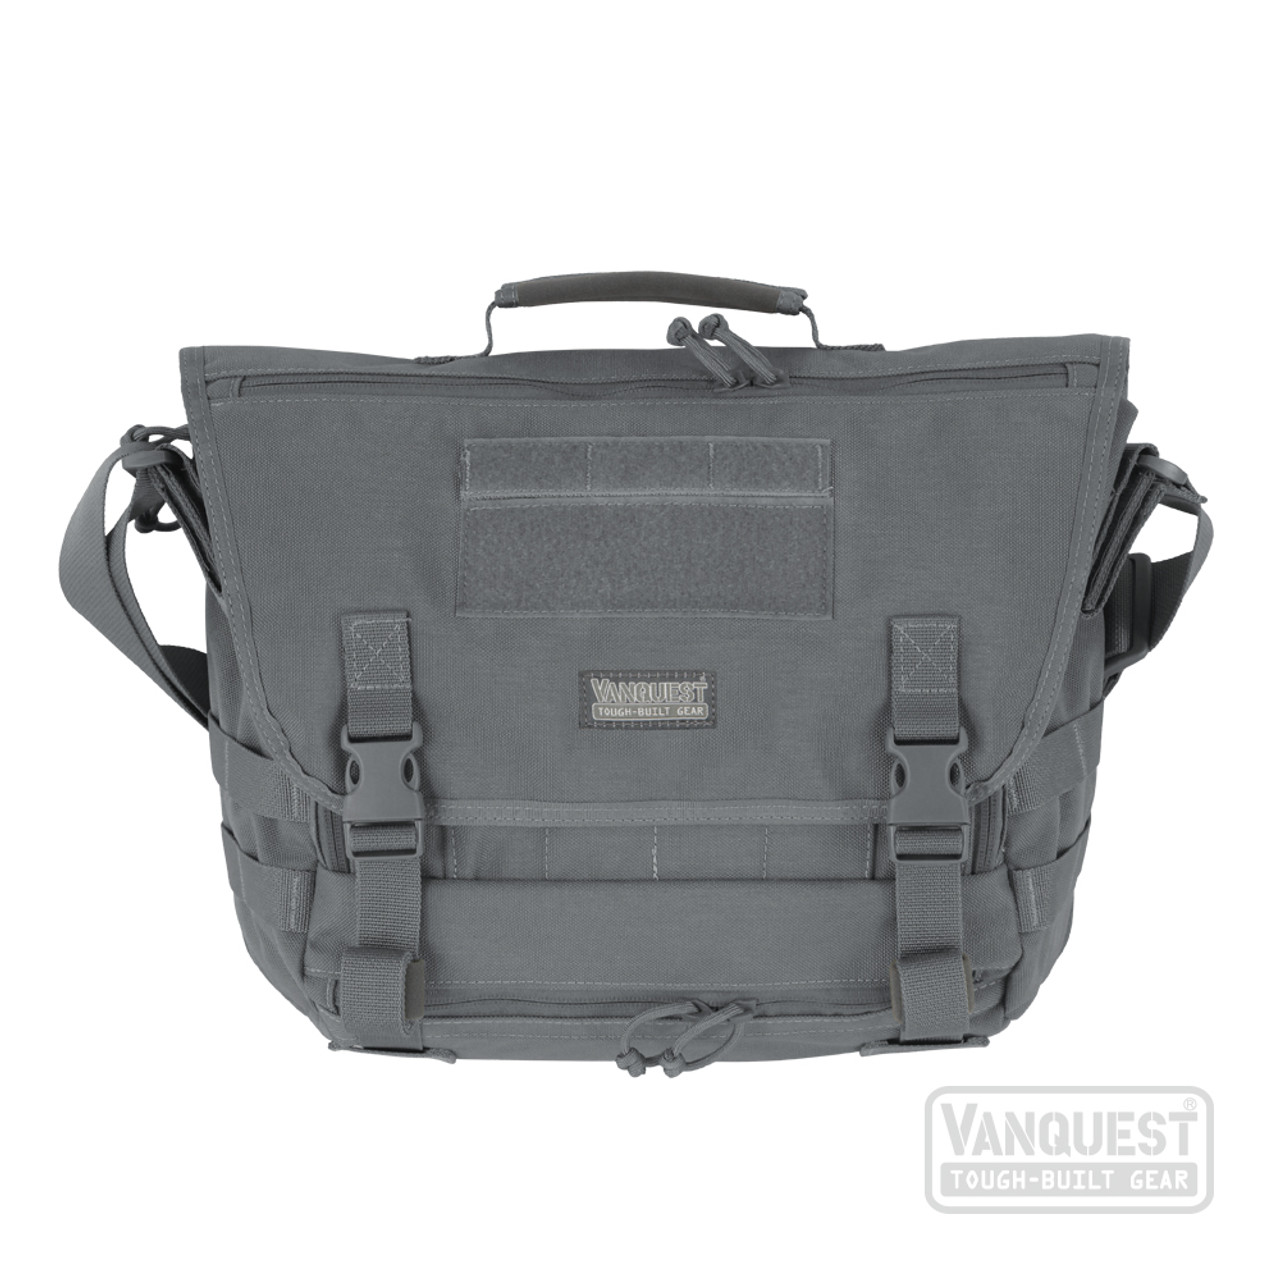 34f5e354e254 SKITCH-12 Messenger Bag - VANQUEST  TOUGH-BUILT GEAR